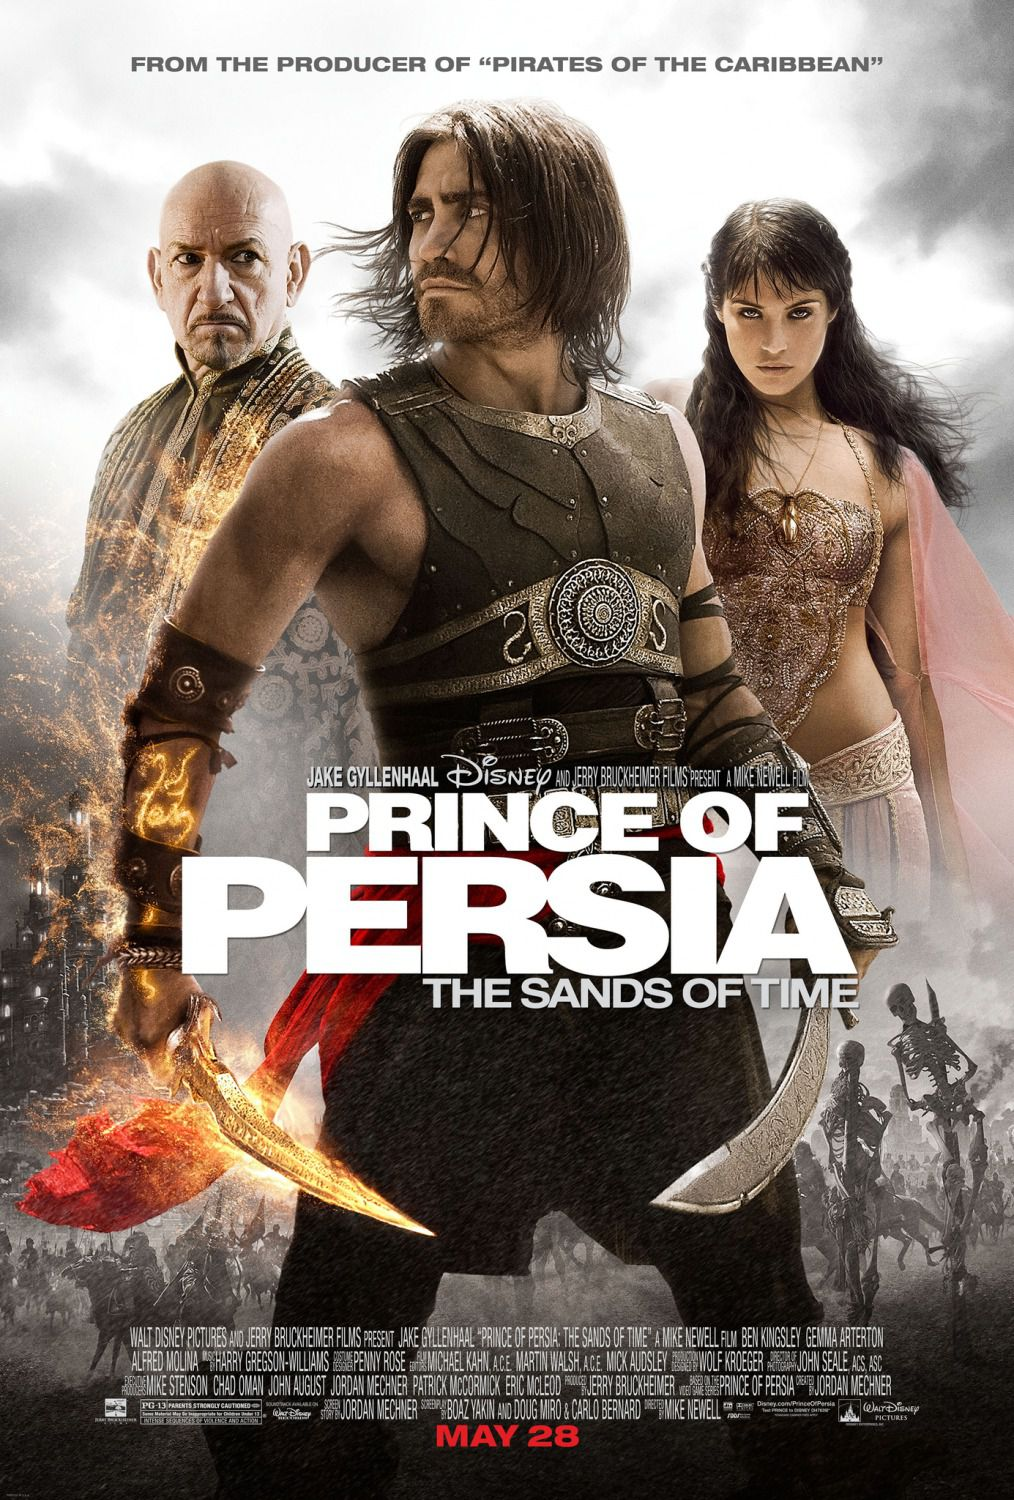 Prince of Persia the Sands of Time (2010)